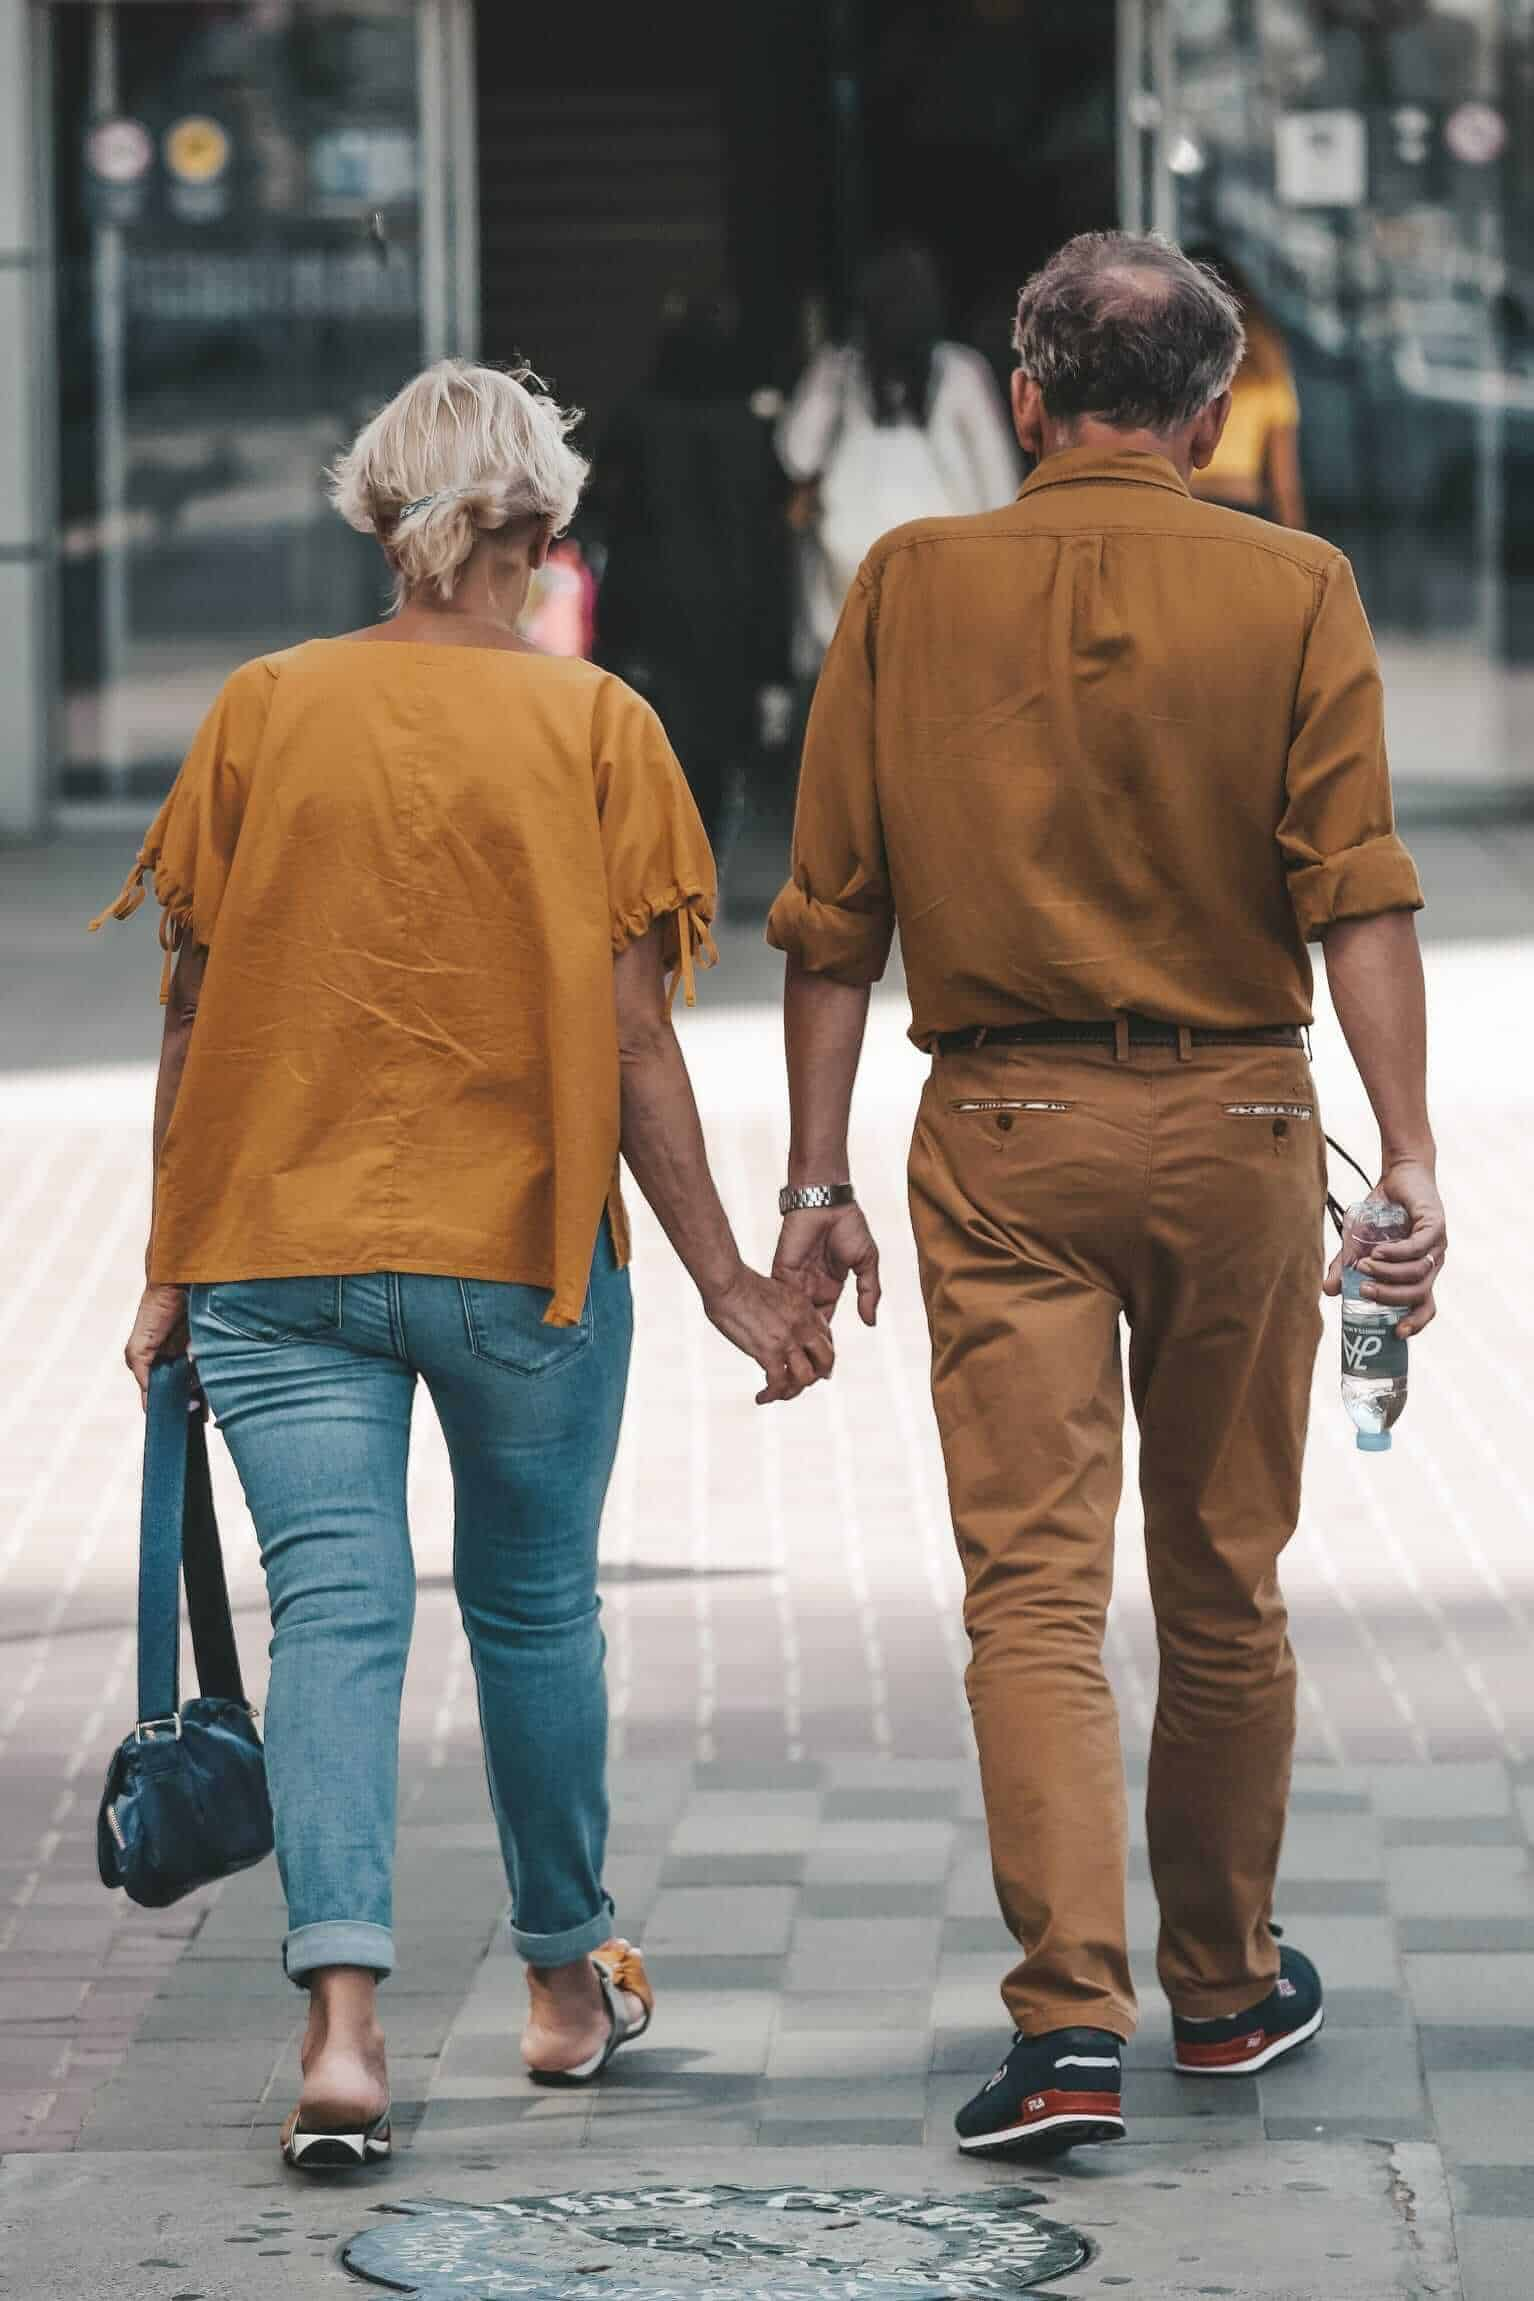 senior people traveling with clasped hands